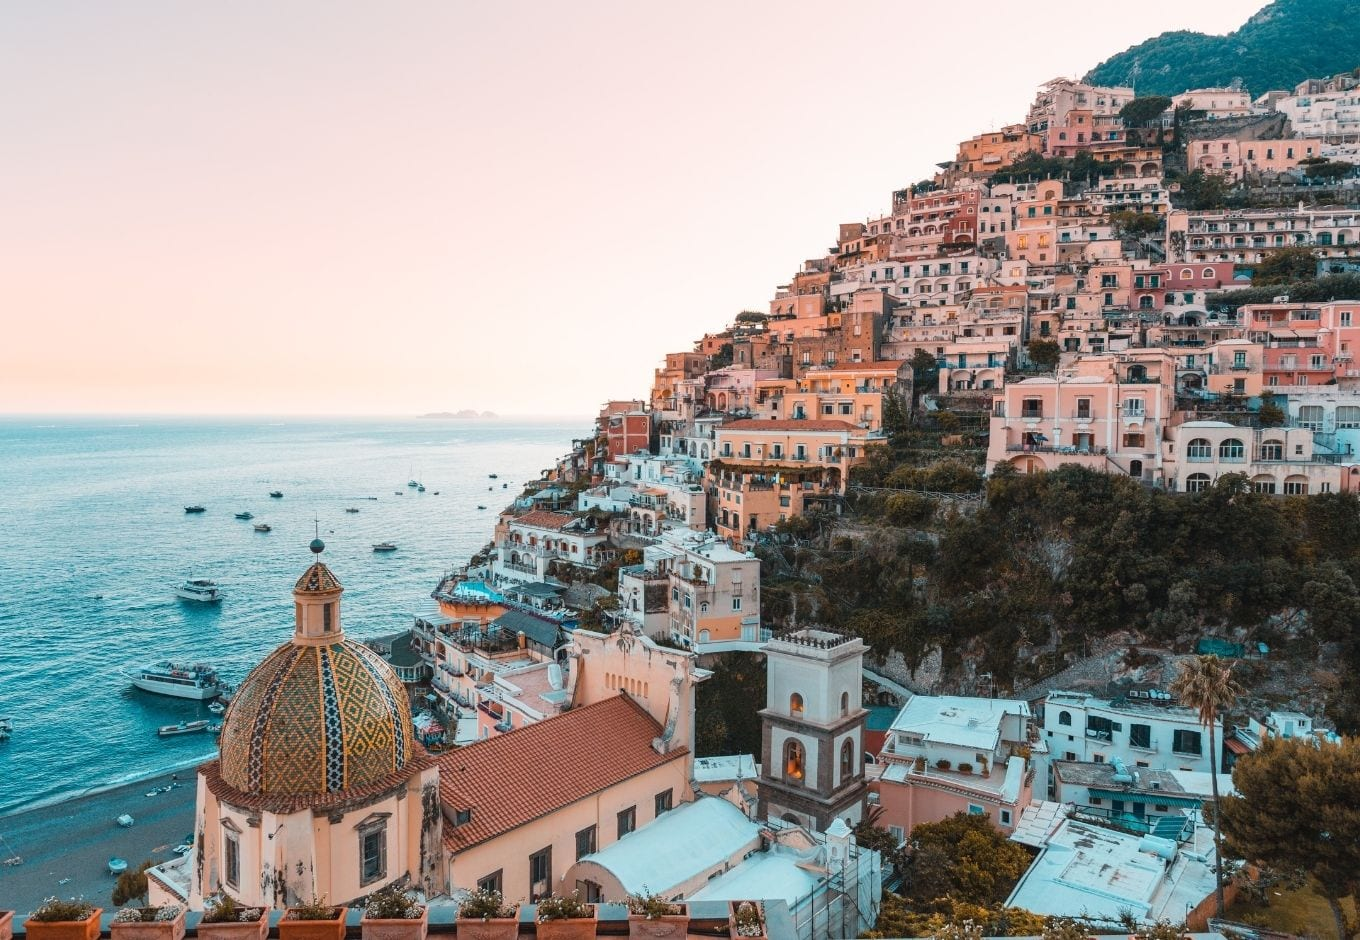 The Amalfi Coast dotted with pink-hued houses at dusk.